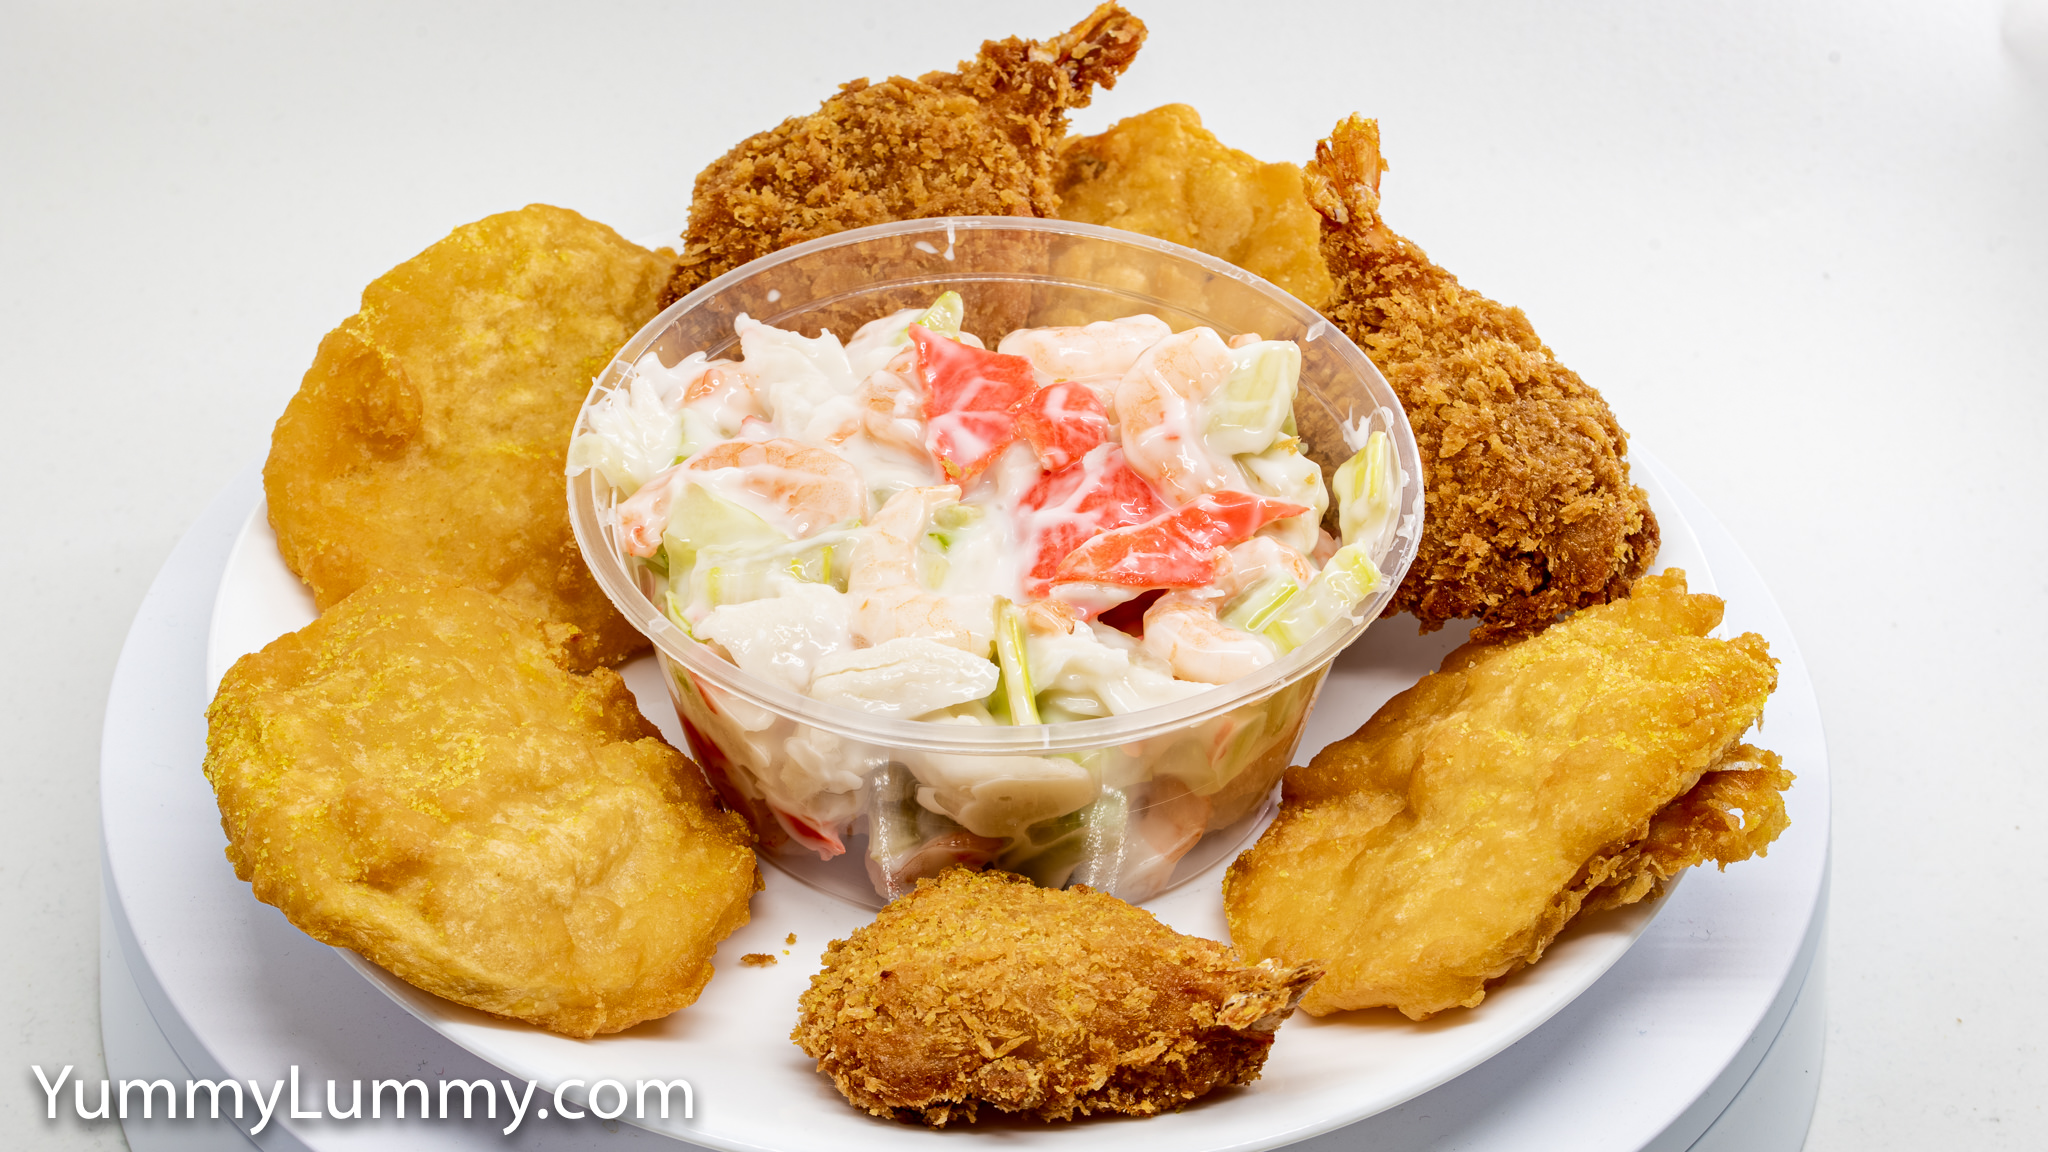 Photograph of Potato scallops Prawn cutlets Seafood salad. Gary Lum.